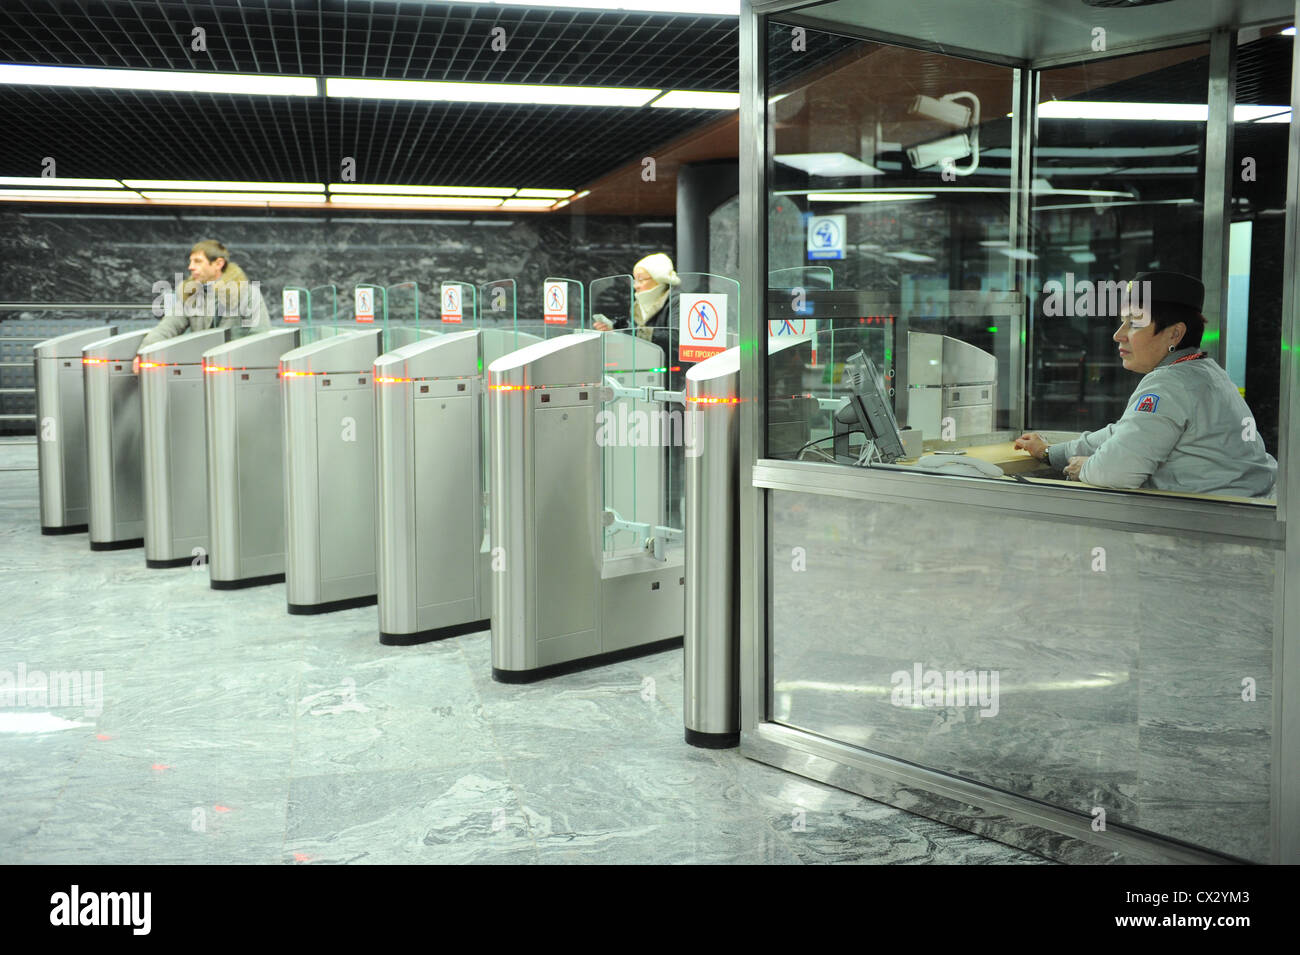 MOSCOW, RUSSIA. DECEMBER 2, 2011. Ticket barriers at the newly opened Borisovo metro station. (Photo ITAR-TASS / - Stock Image